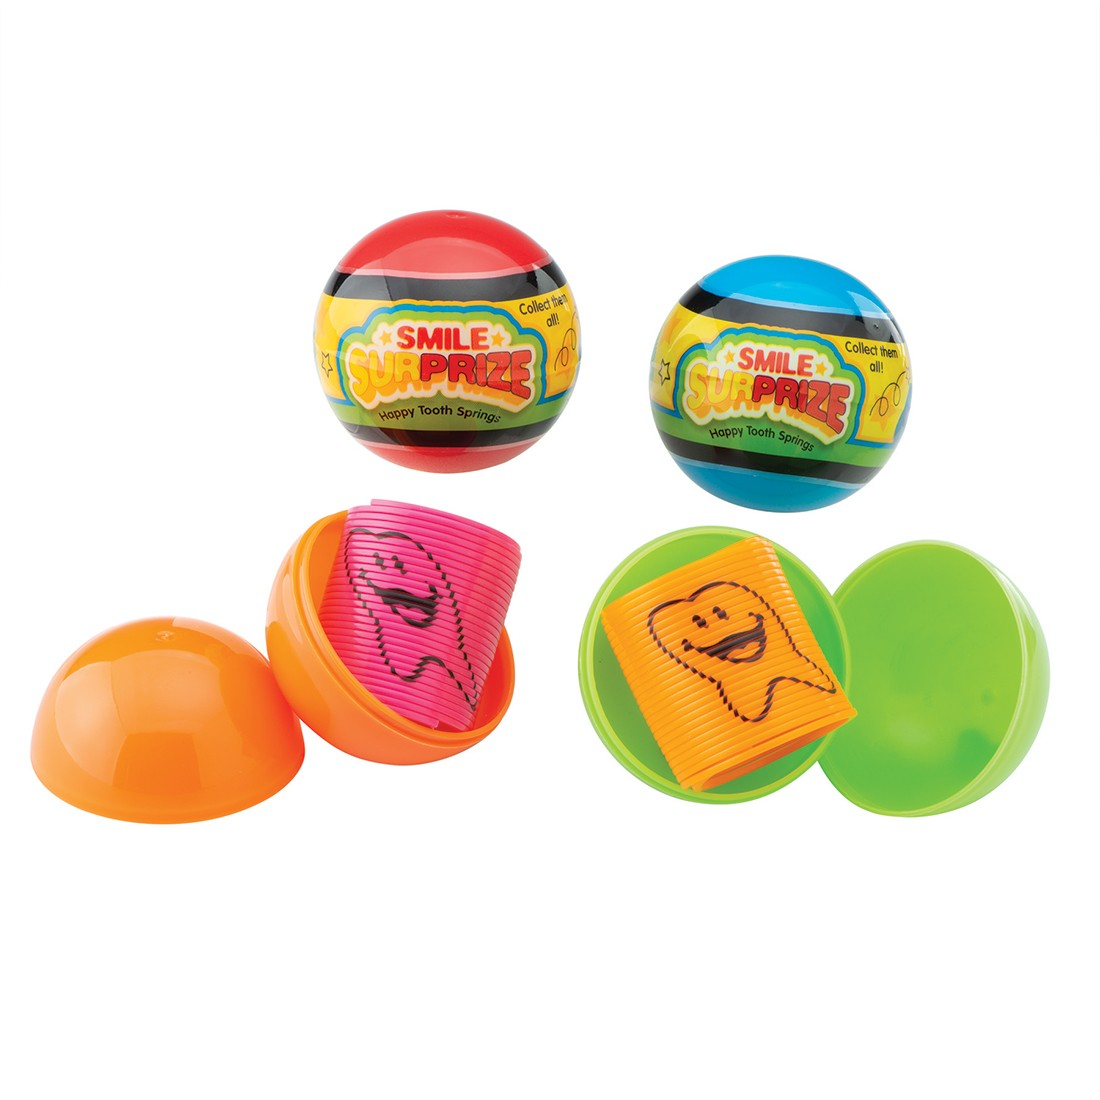 Happy Tooth Springs Smile Surprize Capsules [image]